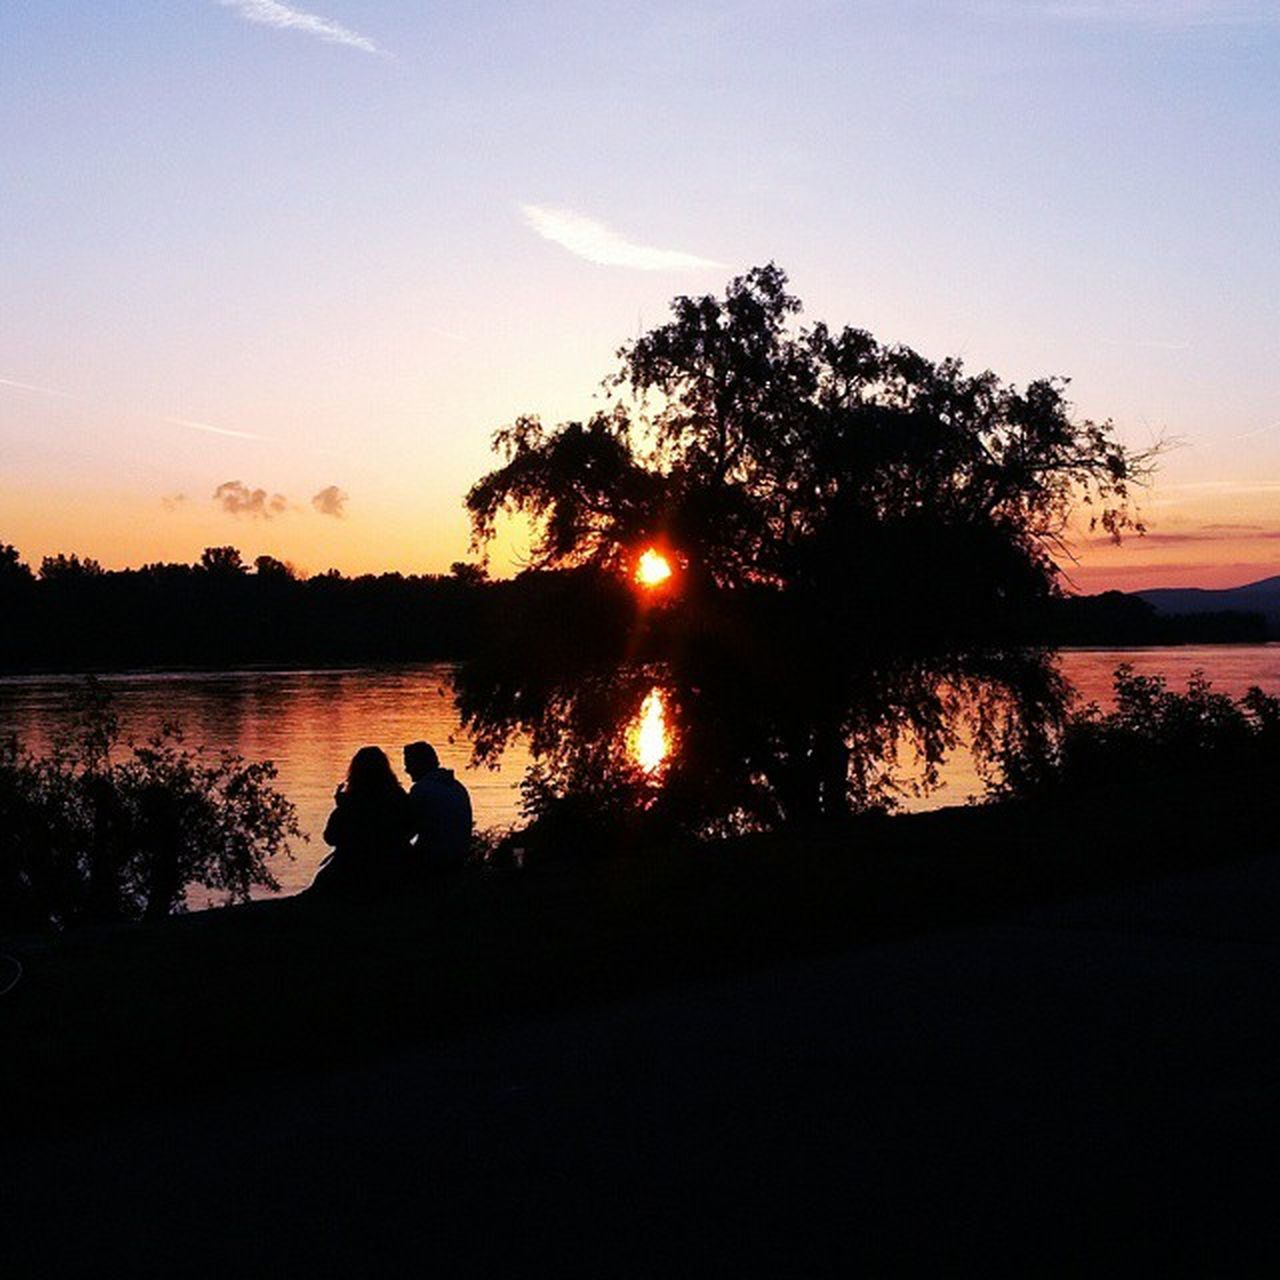 Hungary Vac Vacirev Donau Sunset Siluet Sundayevening Love Cute Couple Couplegoals Down By  The River